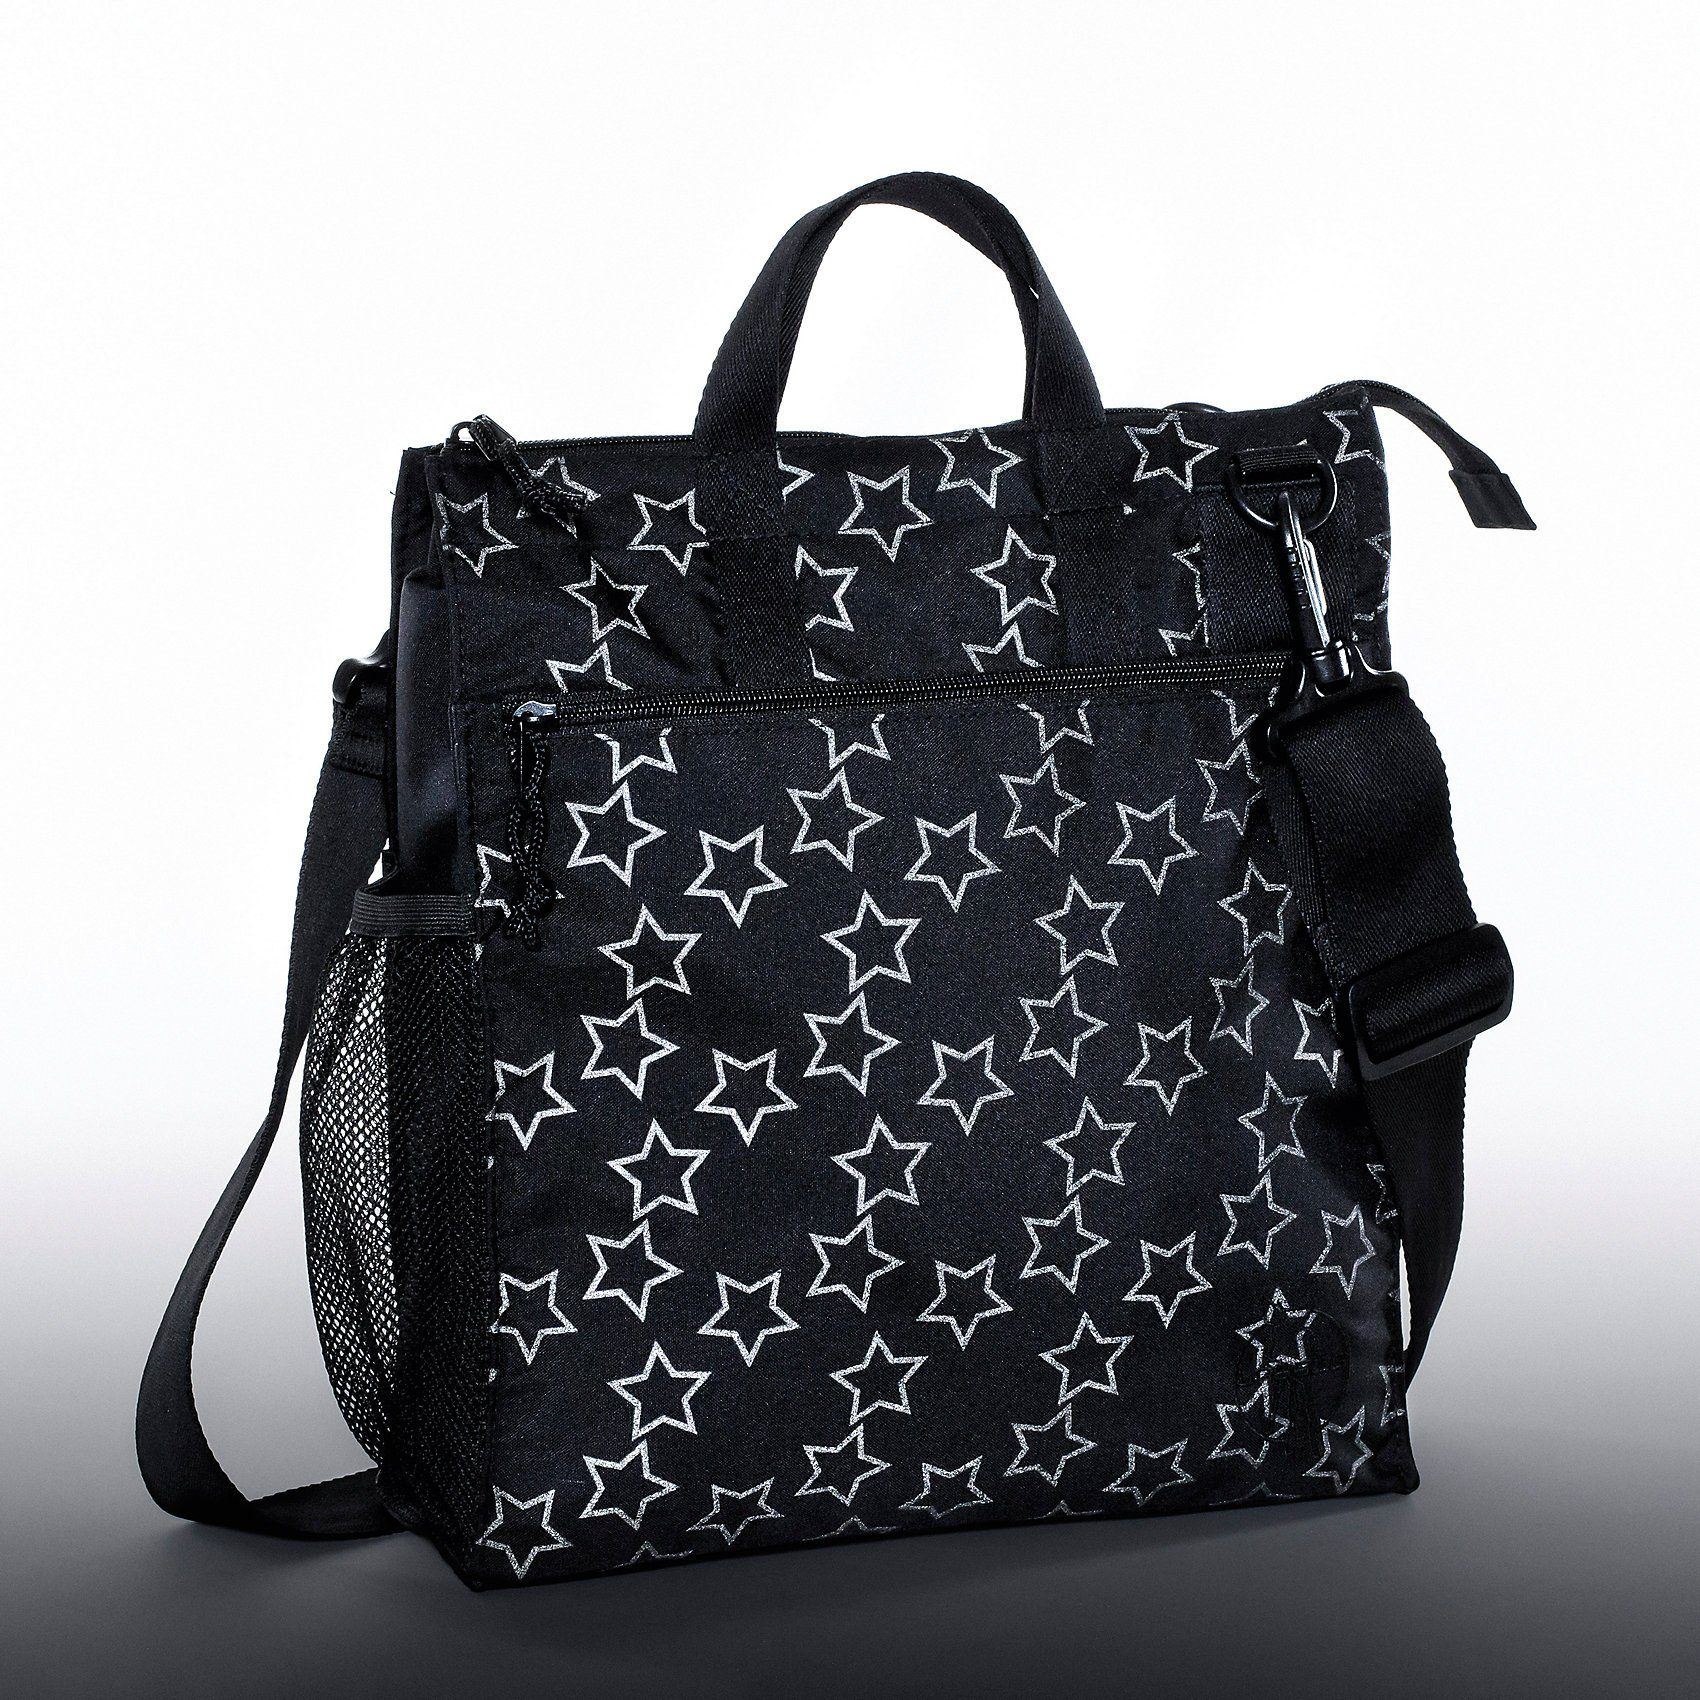 Lässig Wickeltasche Casual, Buggy Bag, Reflective Star, black